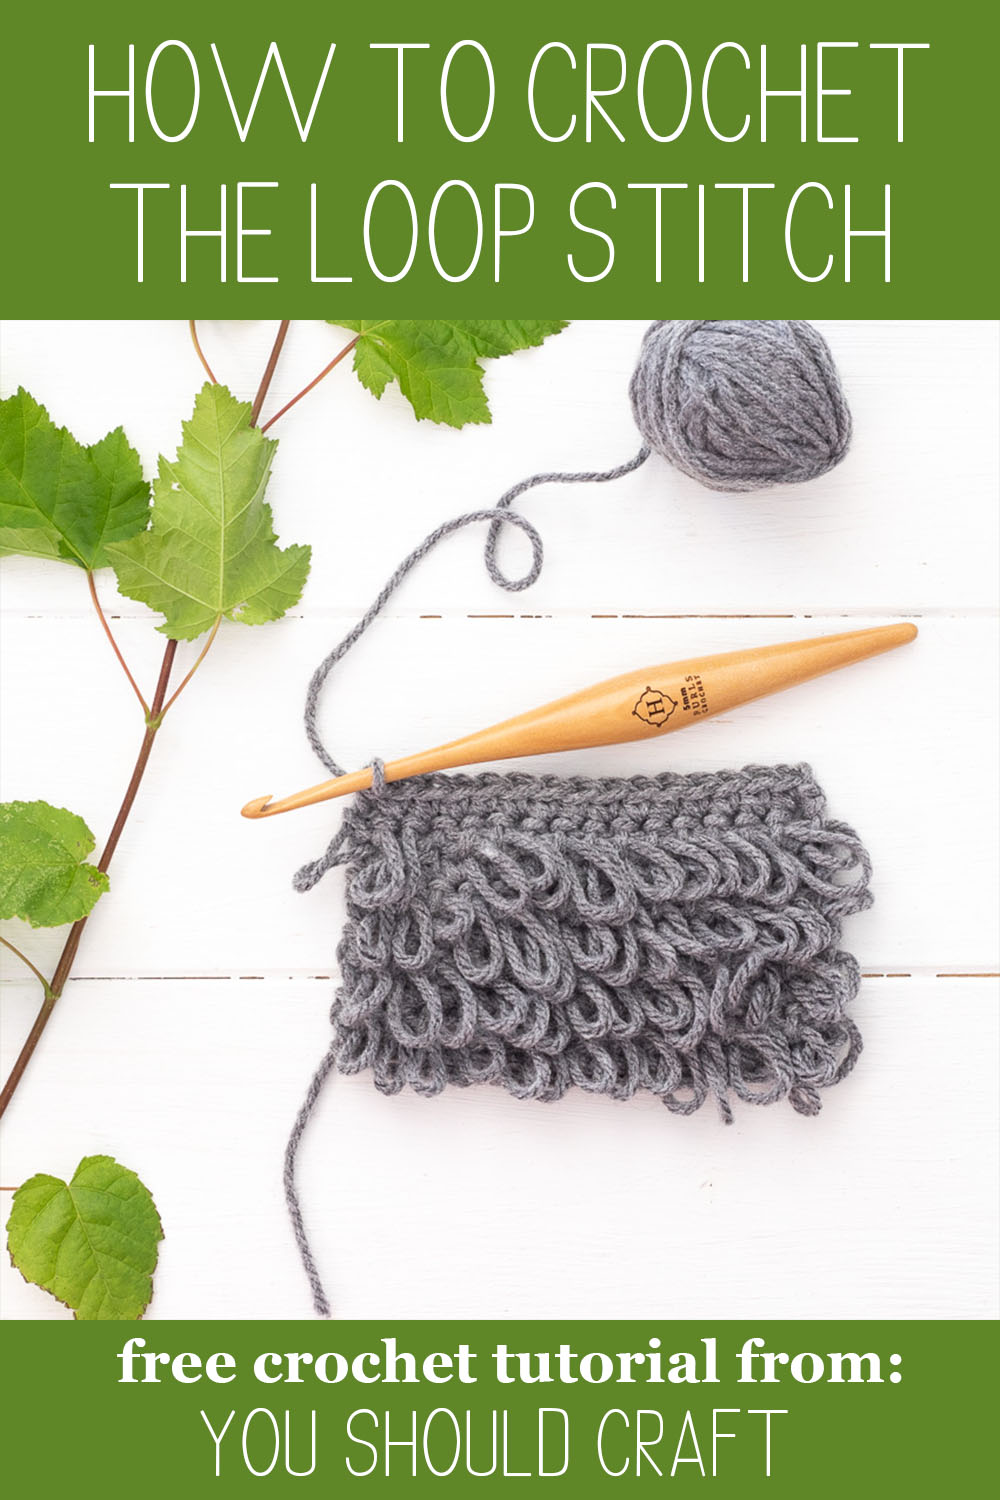 loop stitch crochet swatch with hook, leaves, and yarn ball. includes text: how to crochet the loop stitch - free crochet tutorial from you should craft